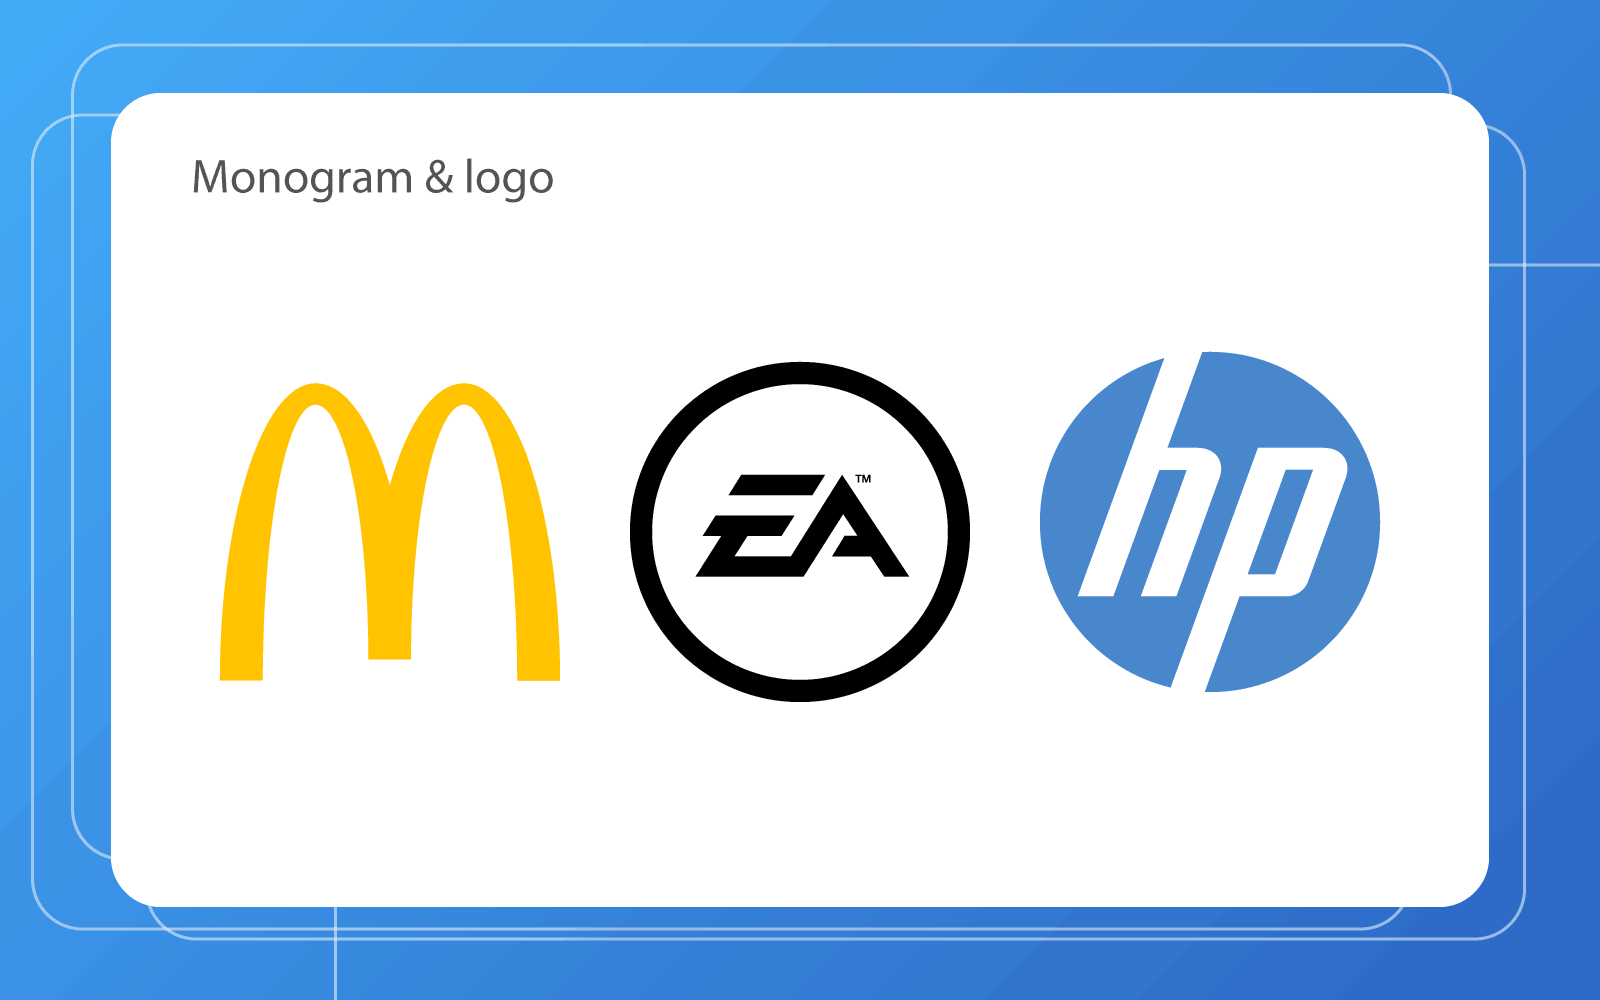 monogram logo designs